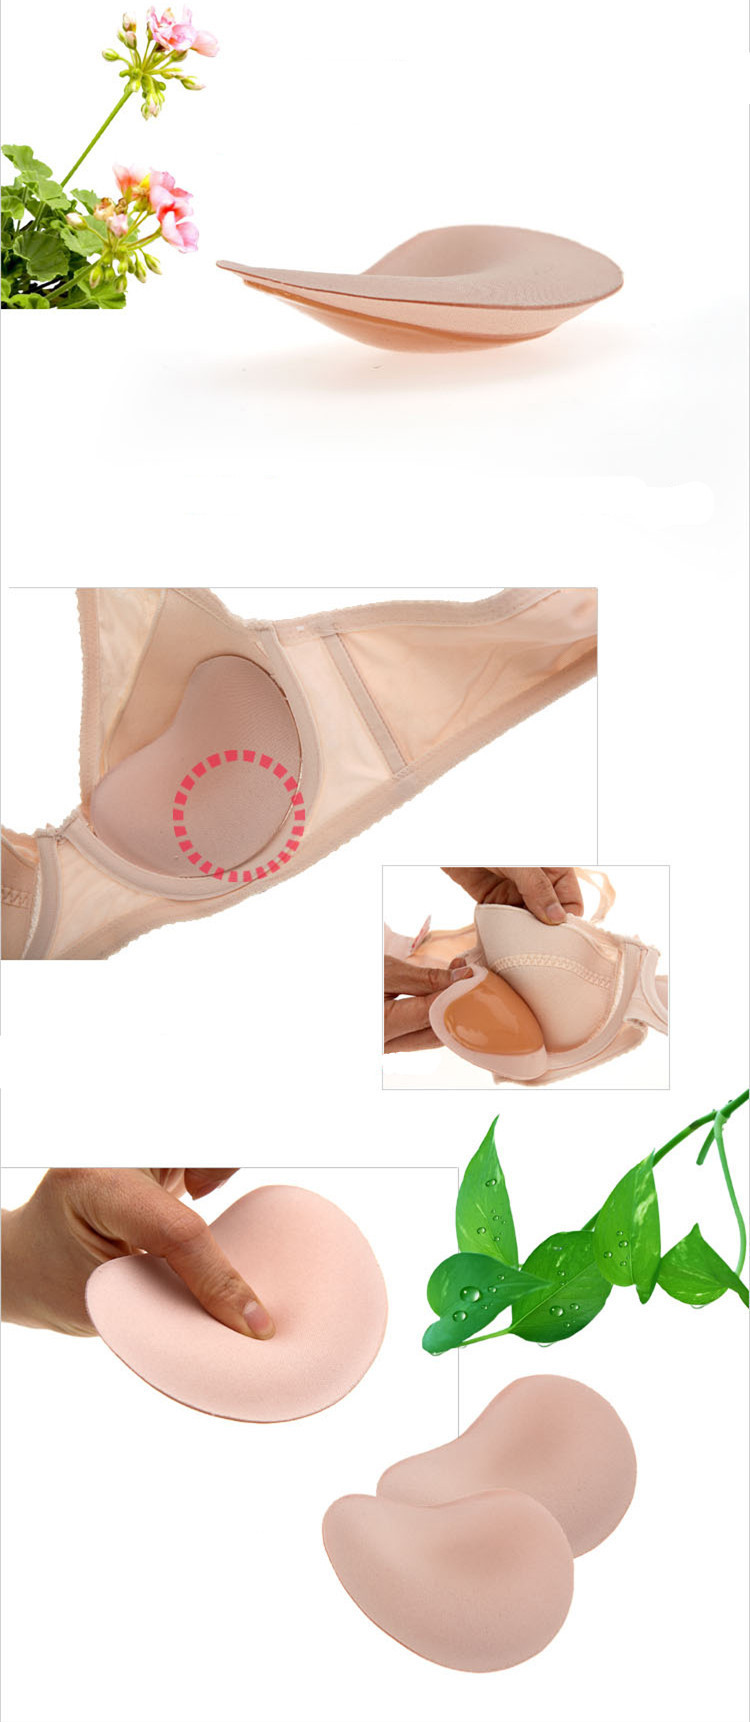 Women Sexy Adhesive Push Up bra pads Silicone Invisible Bra Strapless Backless bra cups for swimsuits removable inserts cup D E 13